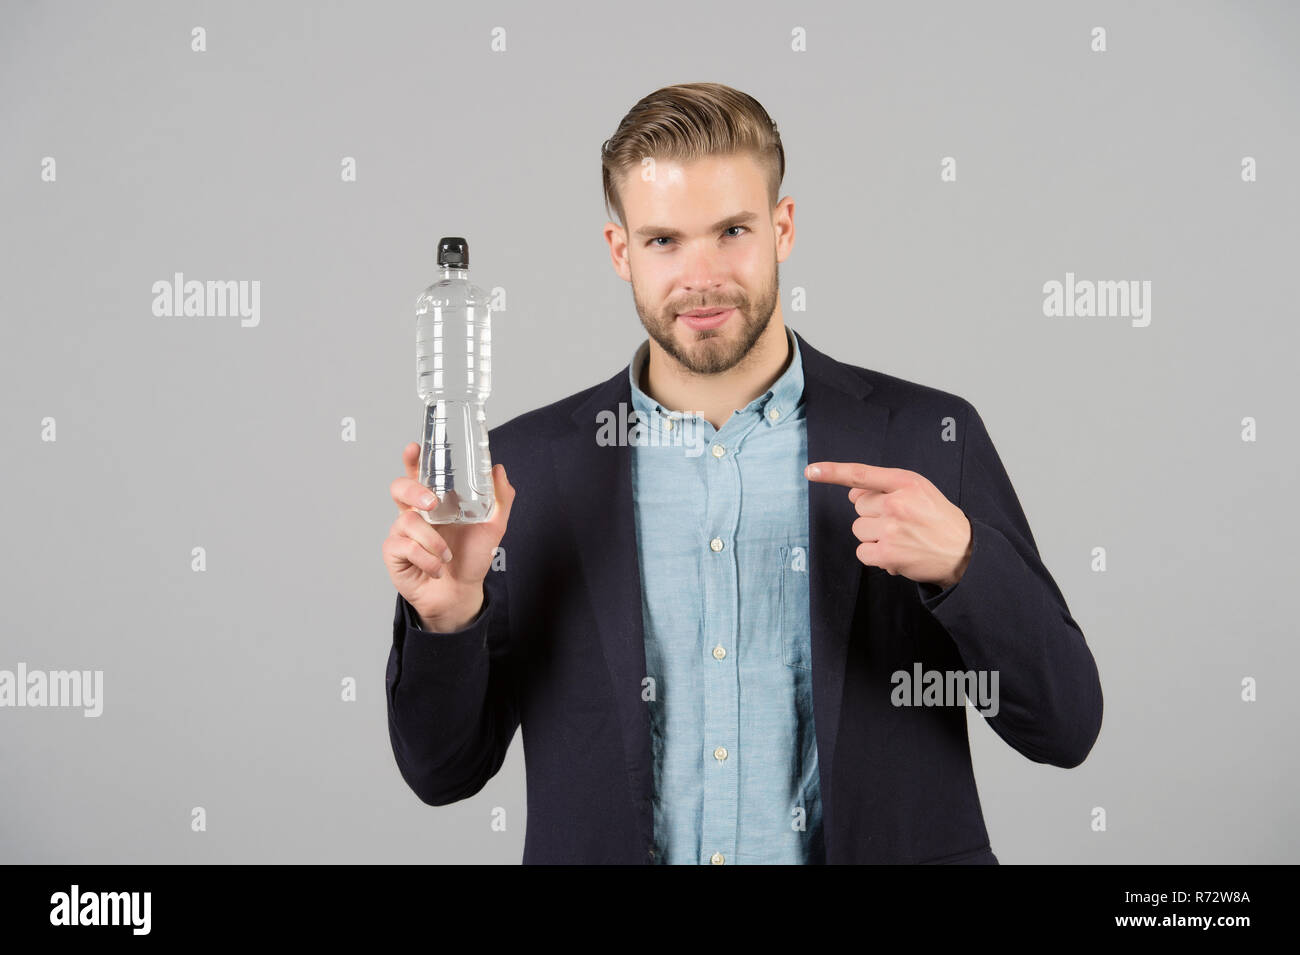 Man point finger at plastic bottle. Thirsty man with water bottle. Thirst and dehydration. Drinking water for health. Presenting product concept. - Stock Image